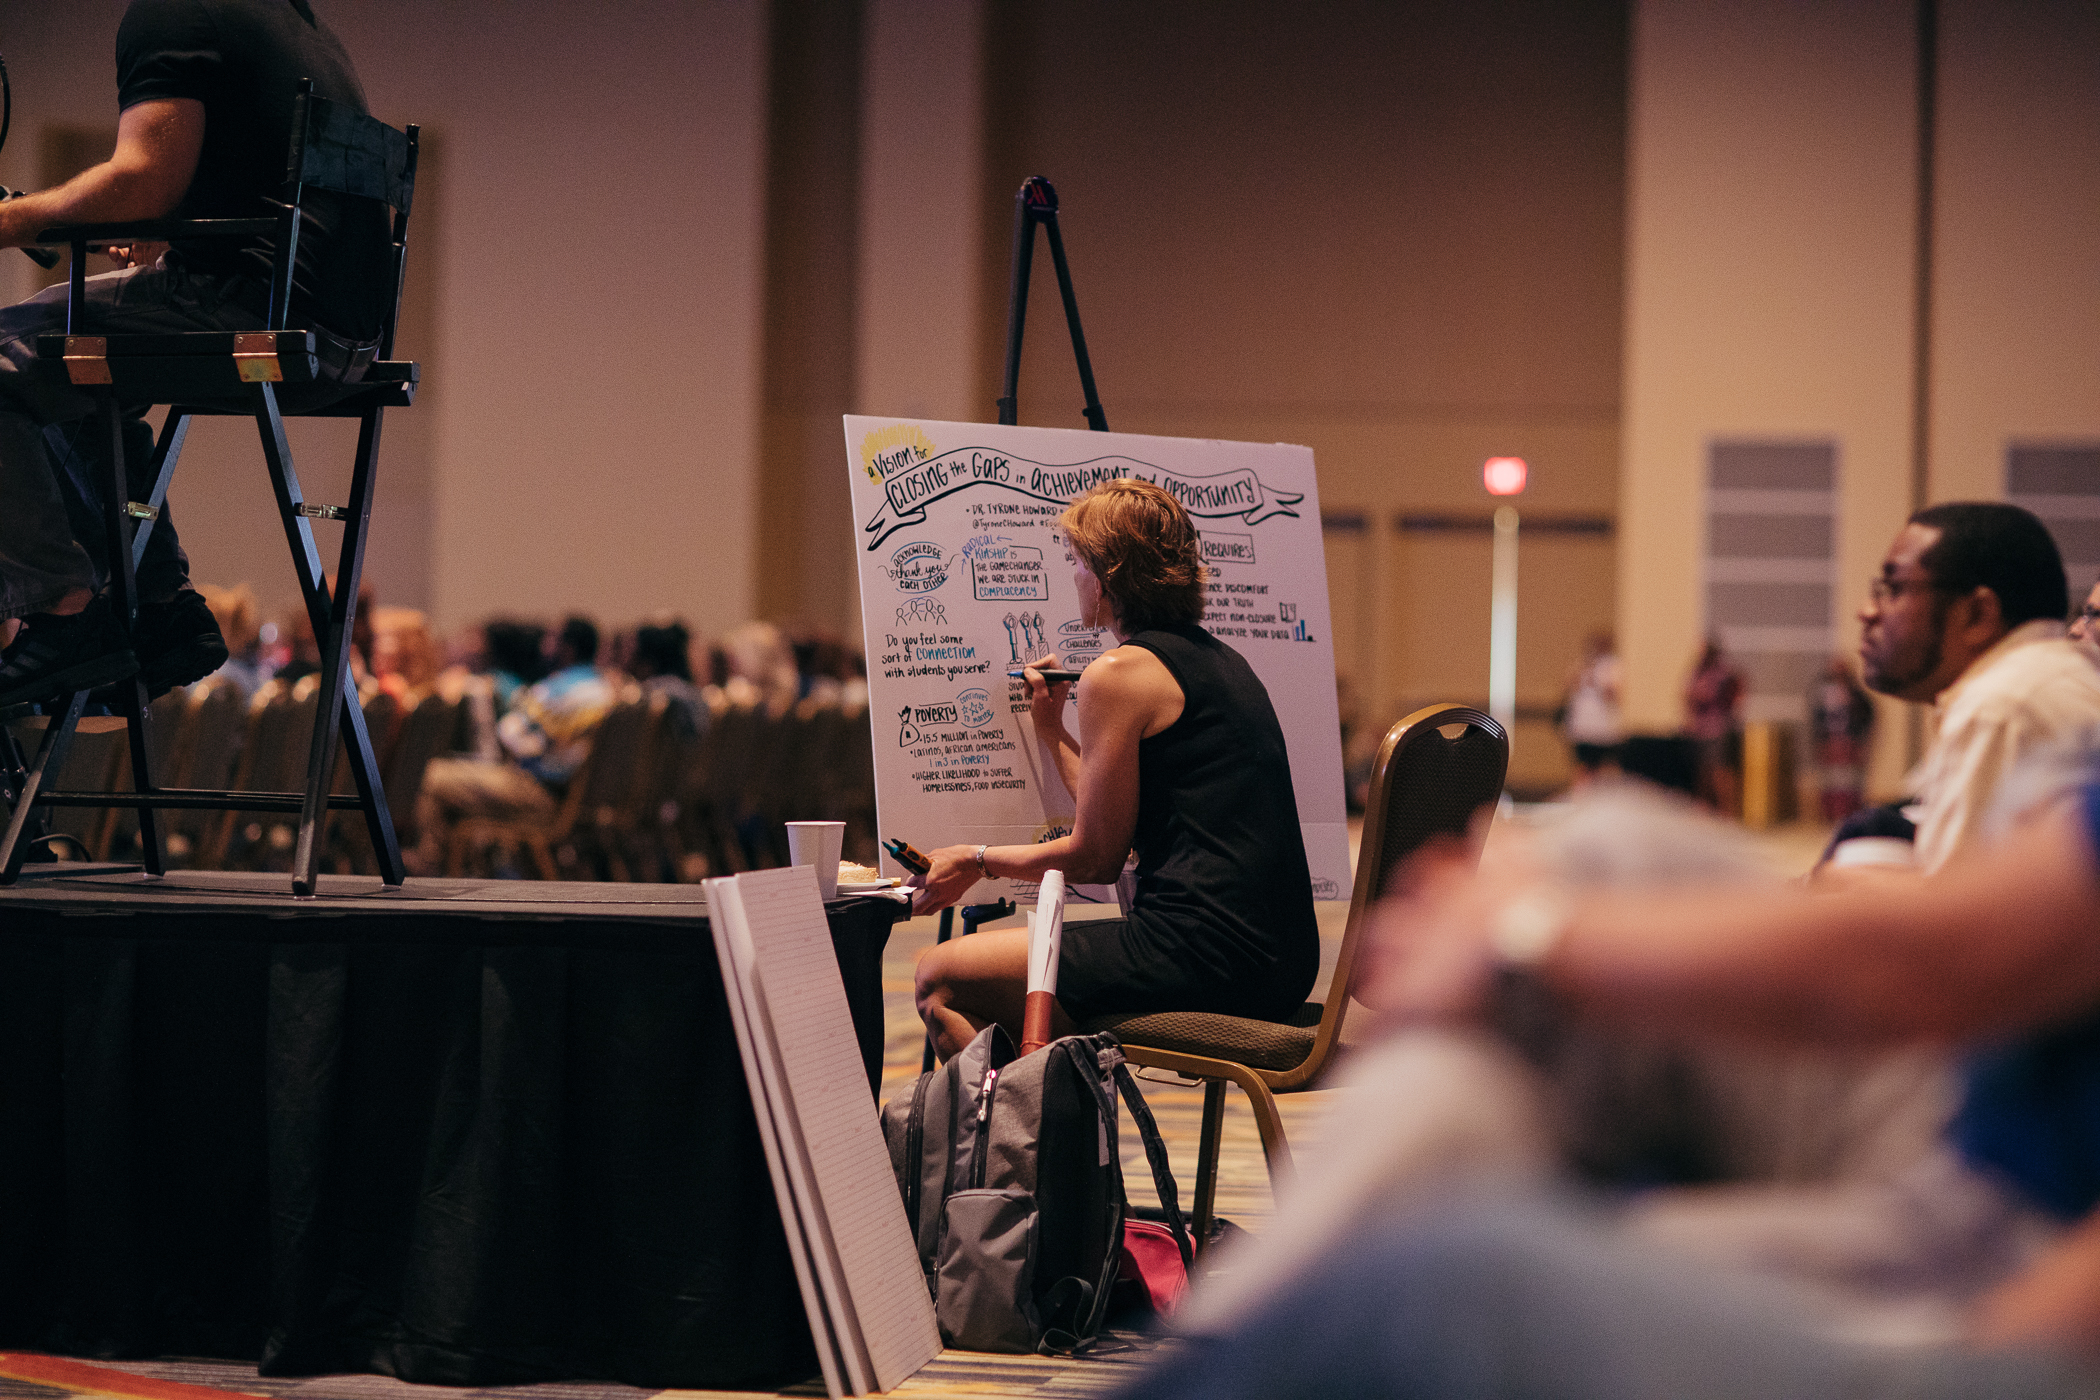 live event commercial photography brand storytelling for education florida conference photographer ©2018abigailbobophotography-91.jpg